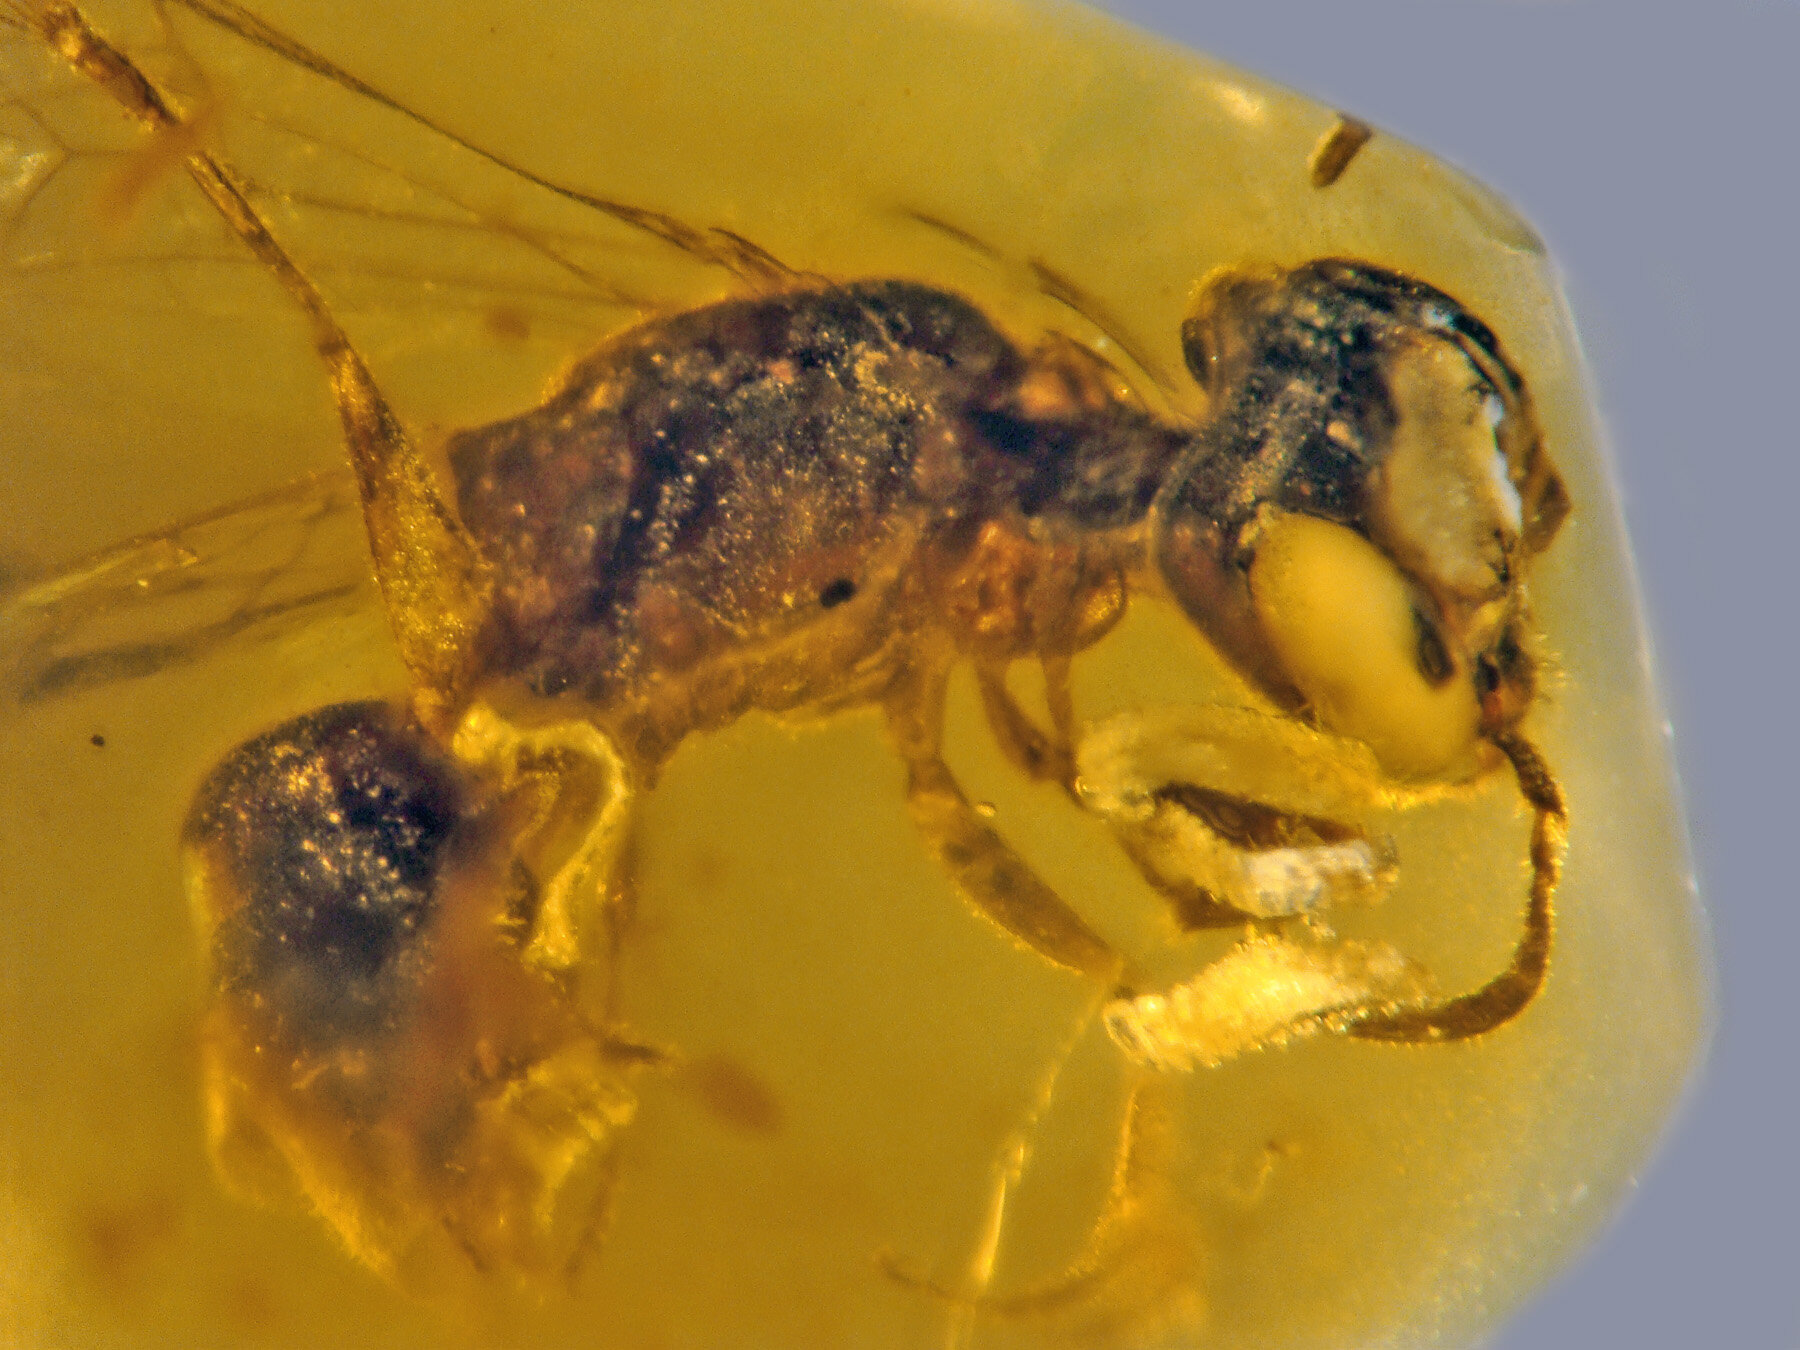 Fossilized insect from 100 million years ago is oldest record of primitive bee with pollen